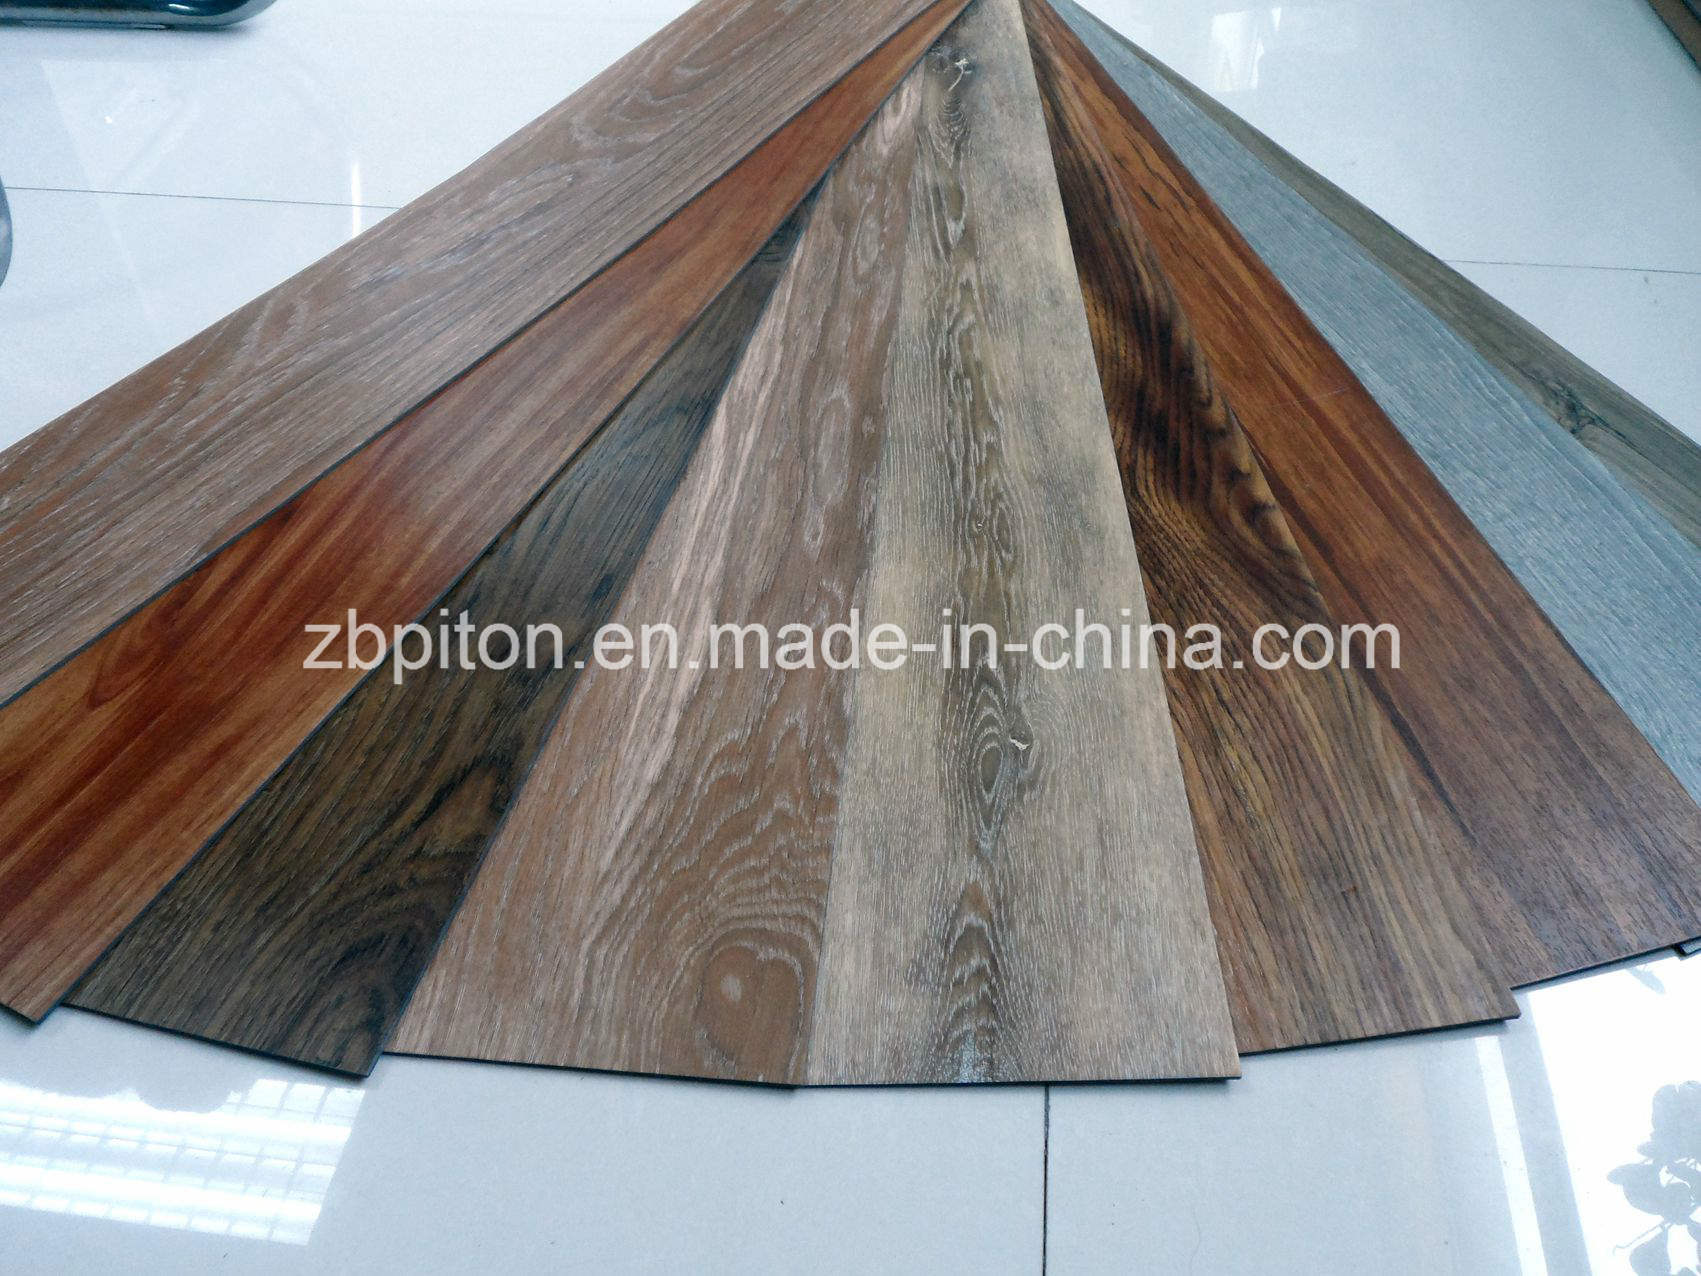 China best price soundproof wood look pvc floor tile photos best price soundproof wood look pvc floor tile dailygadgetfo Gallery